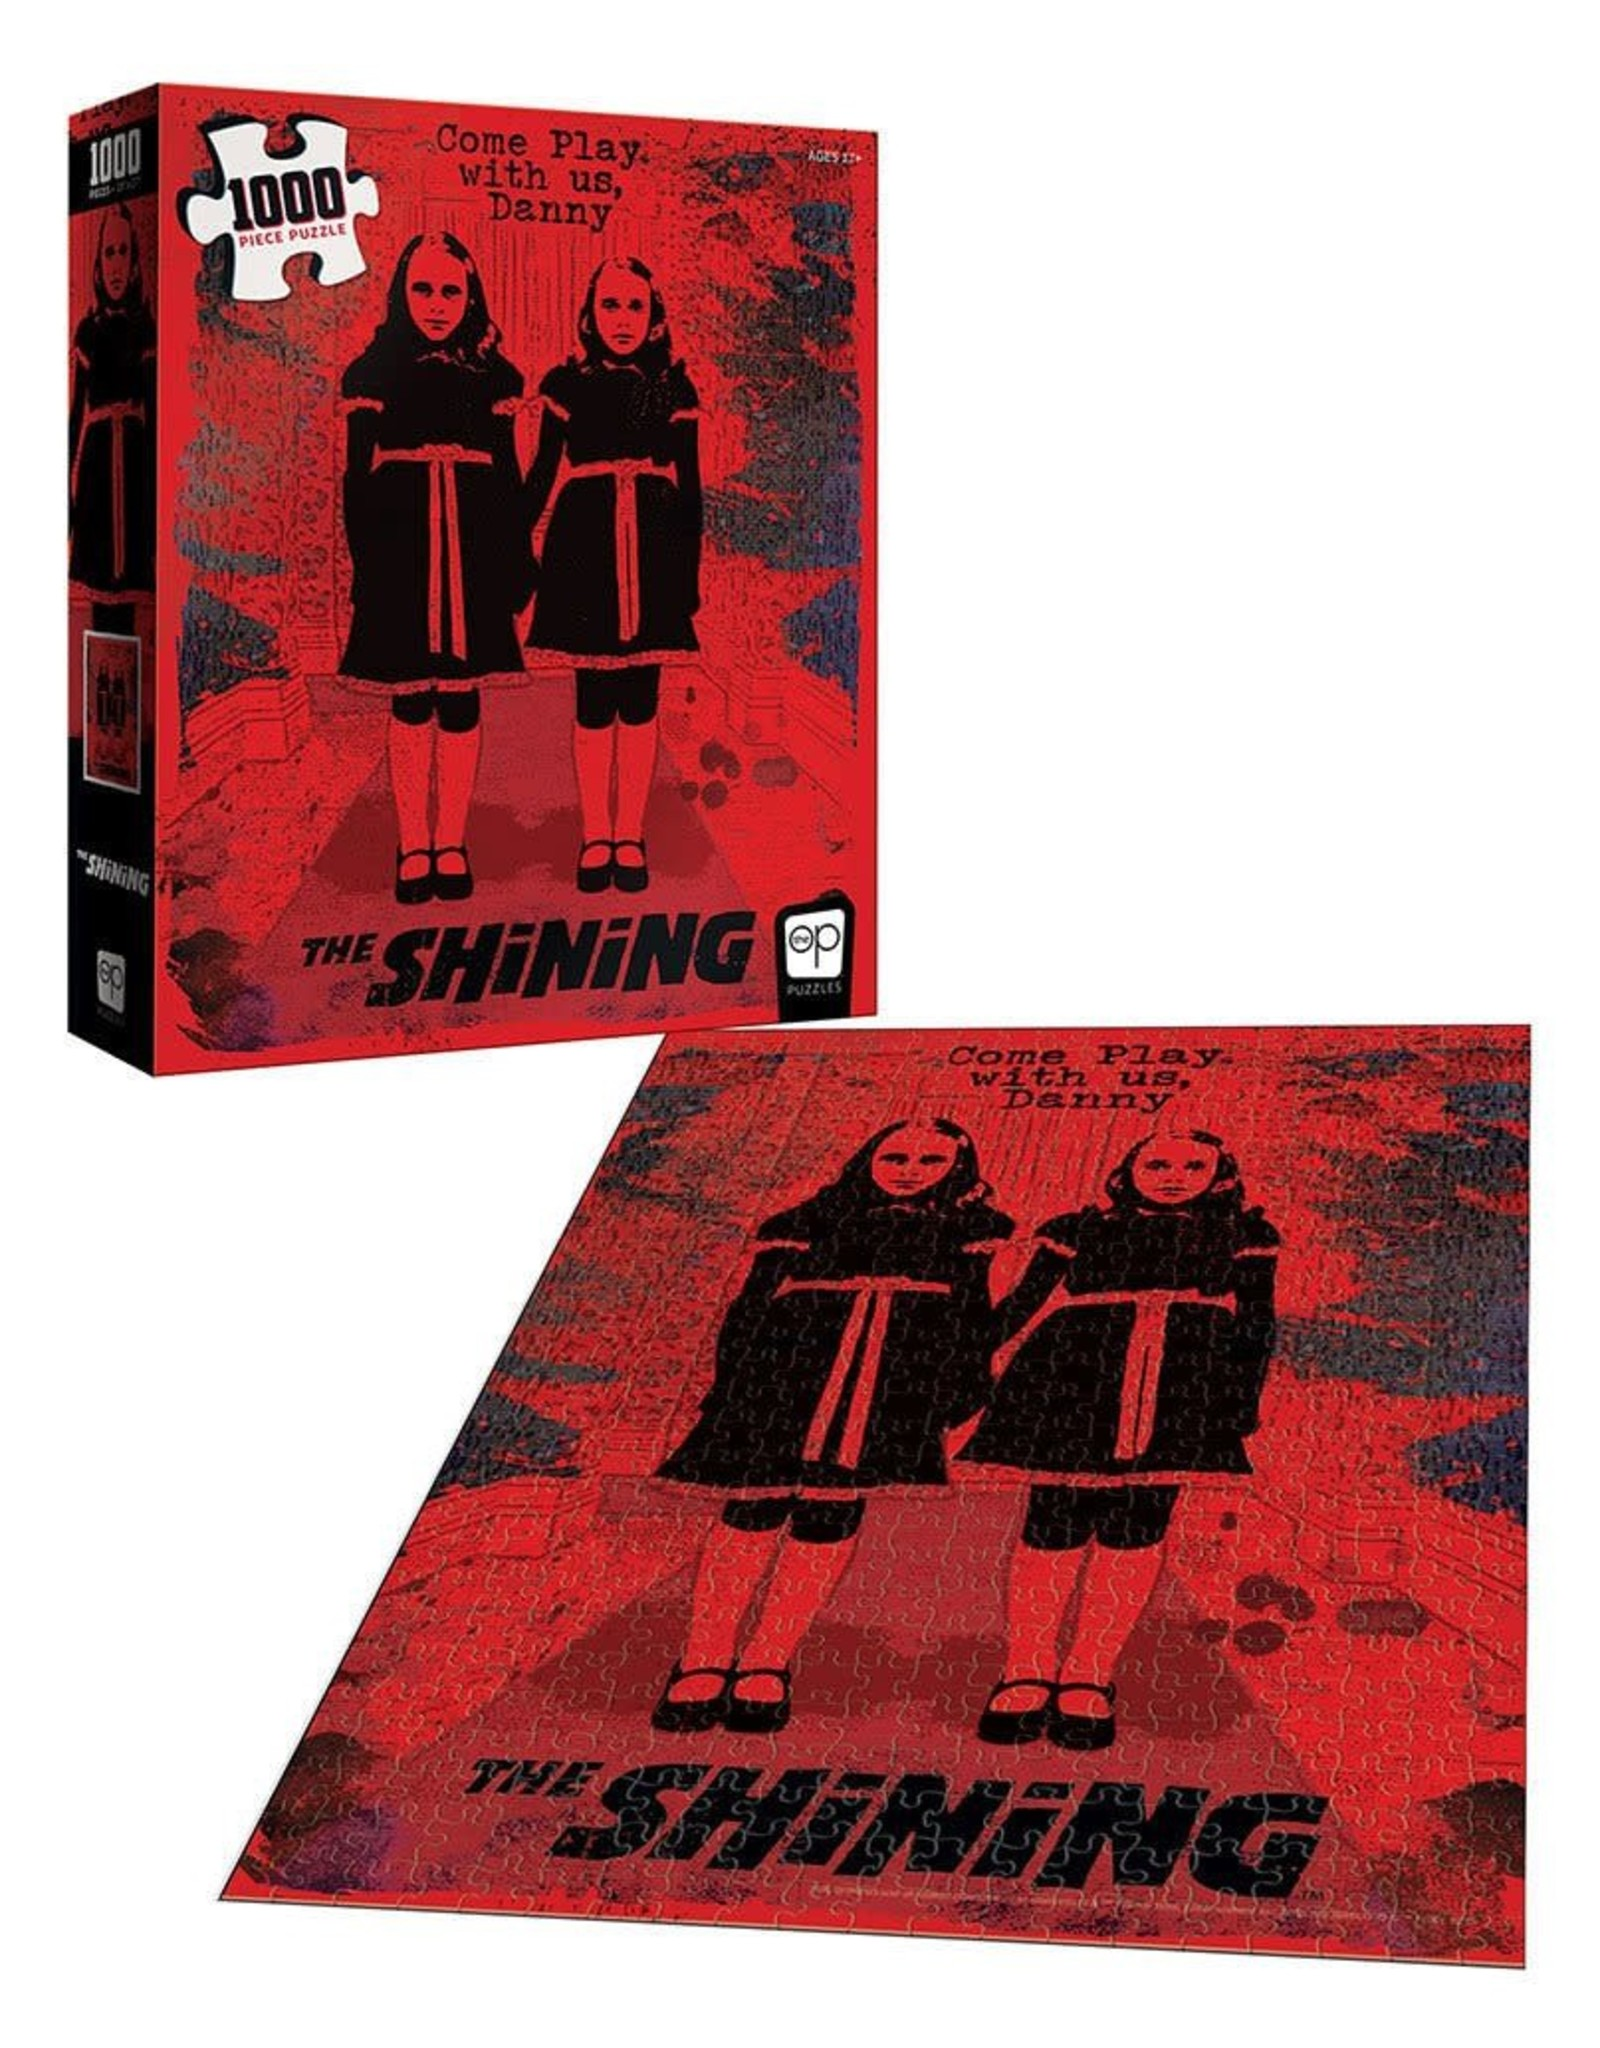 USAopoly THE SHINING Puzzle 1000P - Come Play With Us